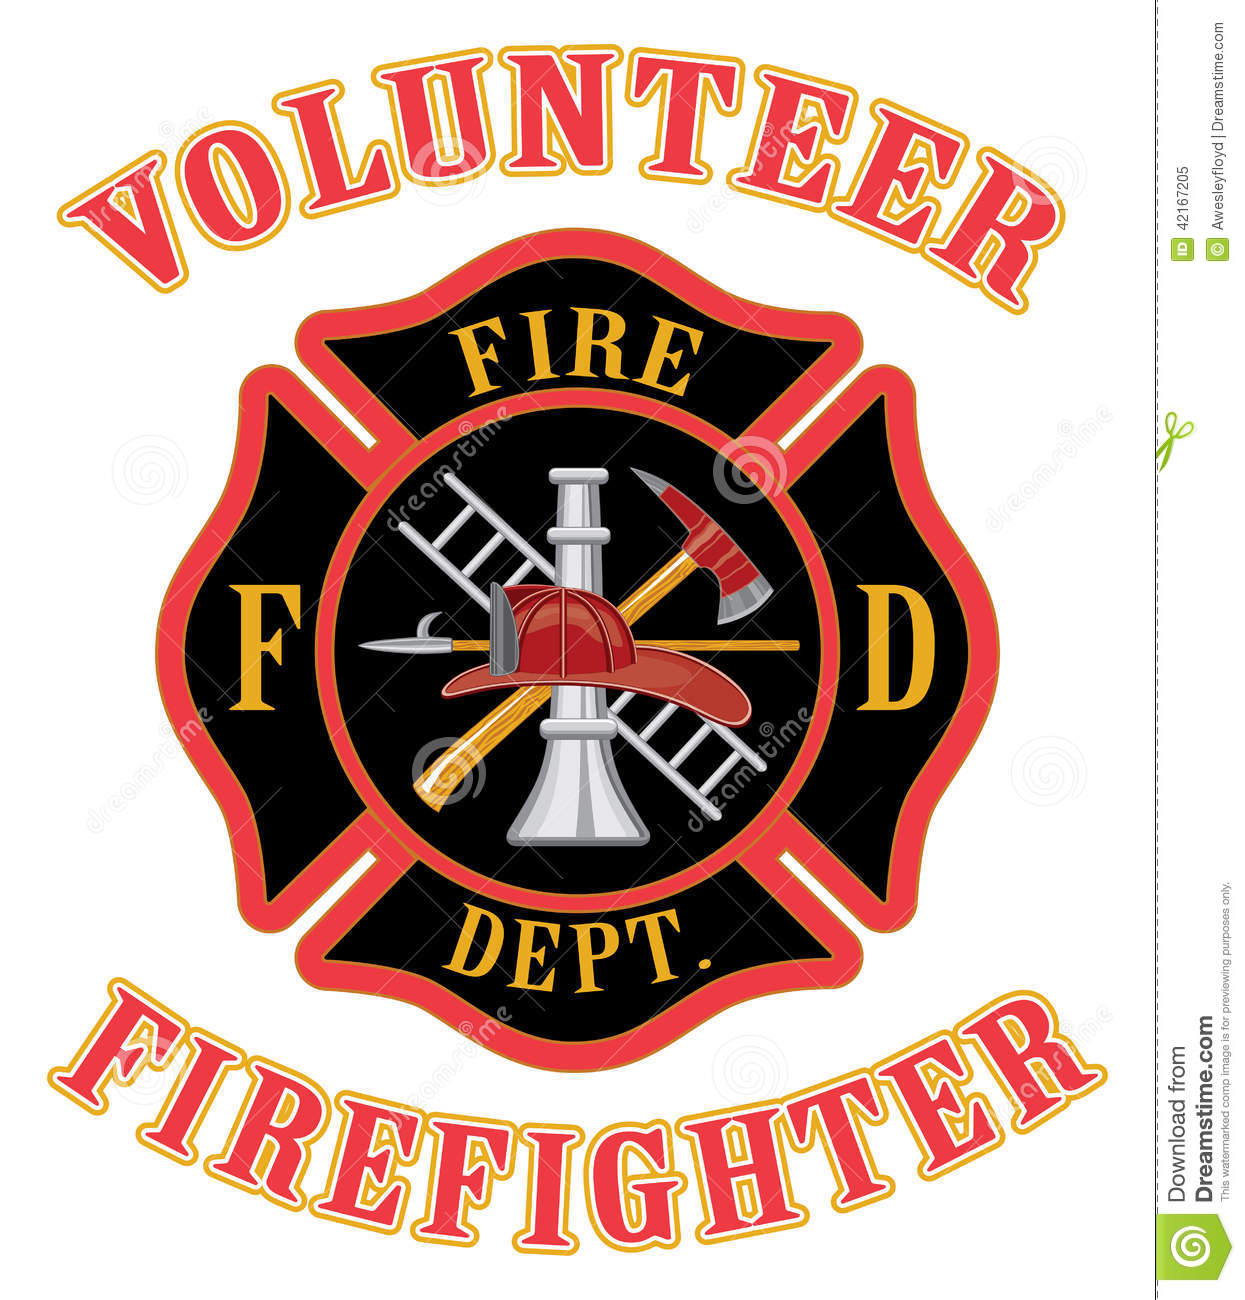 Houstontx gov fire indeximages newlogo moreover Brand Symbolen 42432 additionally Emt Silhouette also Future Paramedic Logo likewise Red Spartan Helmet Logo. on fire department logos and symbols